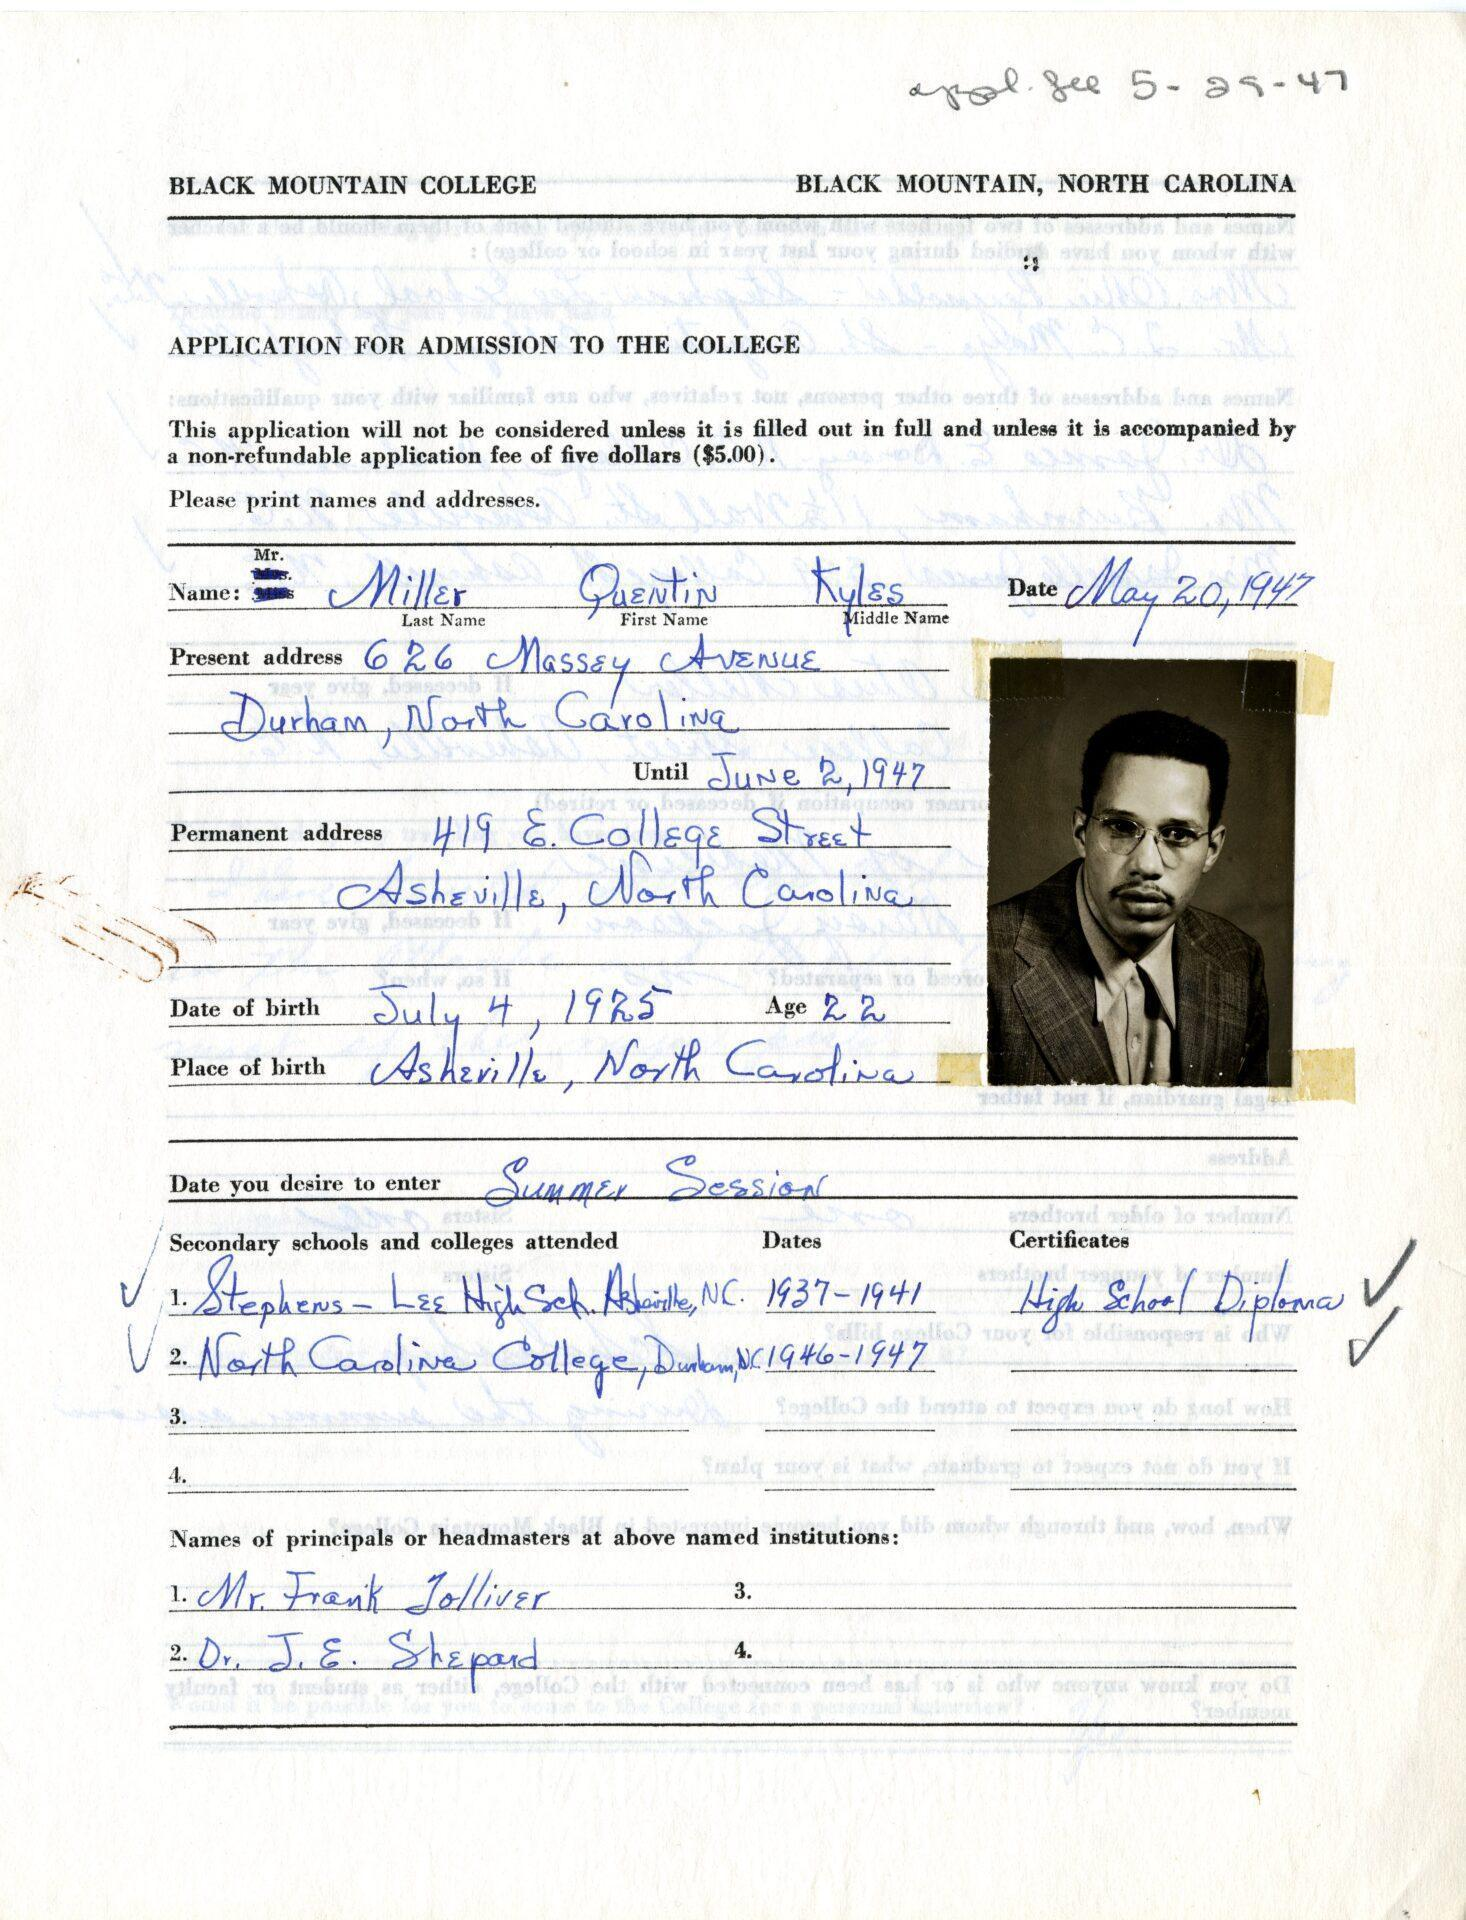 Quentin Kyles Miller (b. 1925 Asheville, NC - d. 1992 Asheville, NC) Application to BMC, 1947. Digital print from archival scan. Western Regional Archives, State Archives of NC.